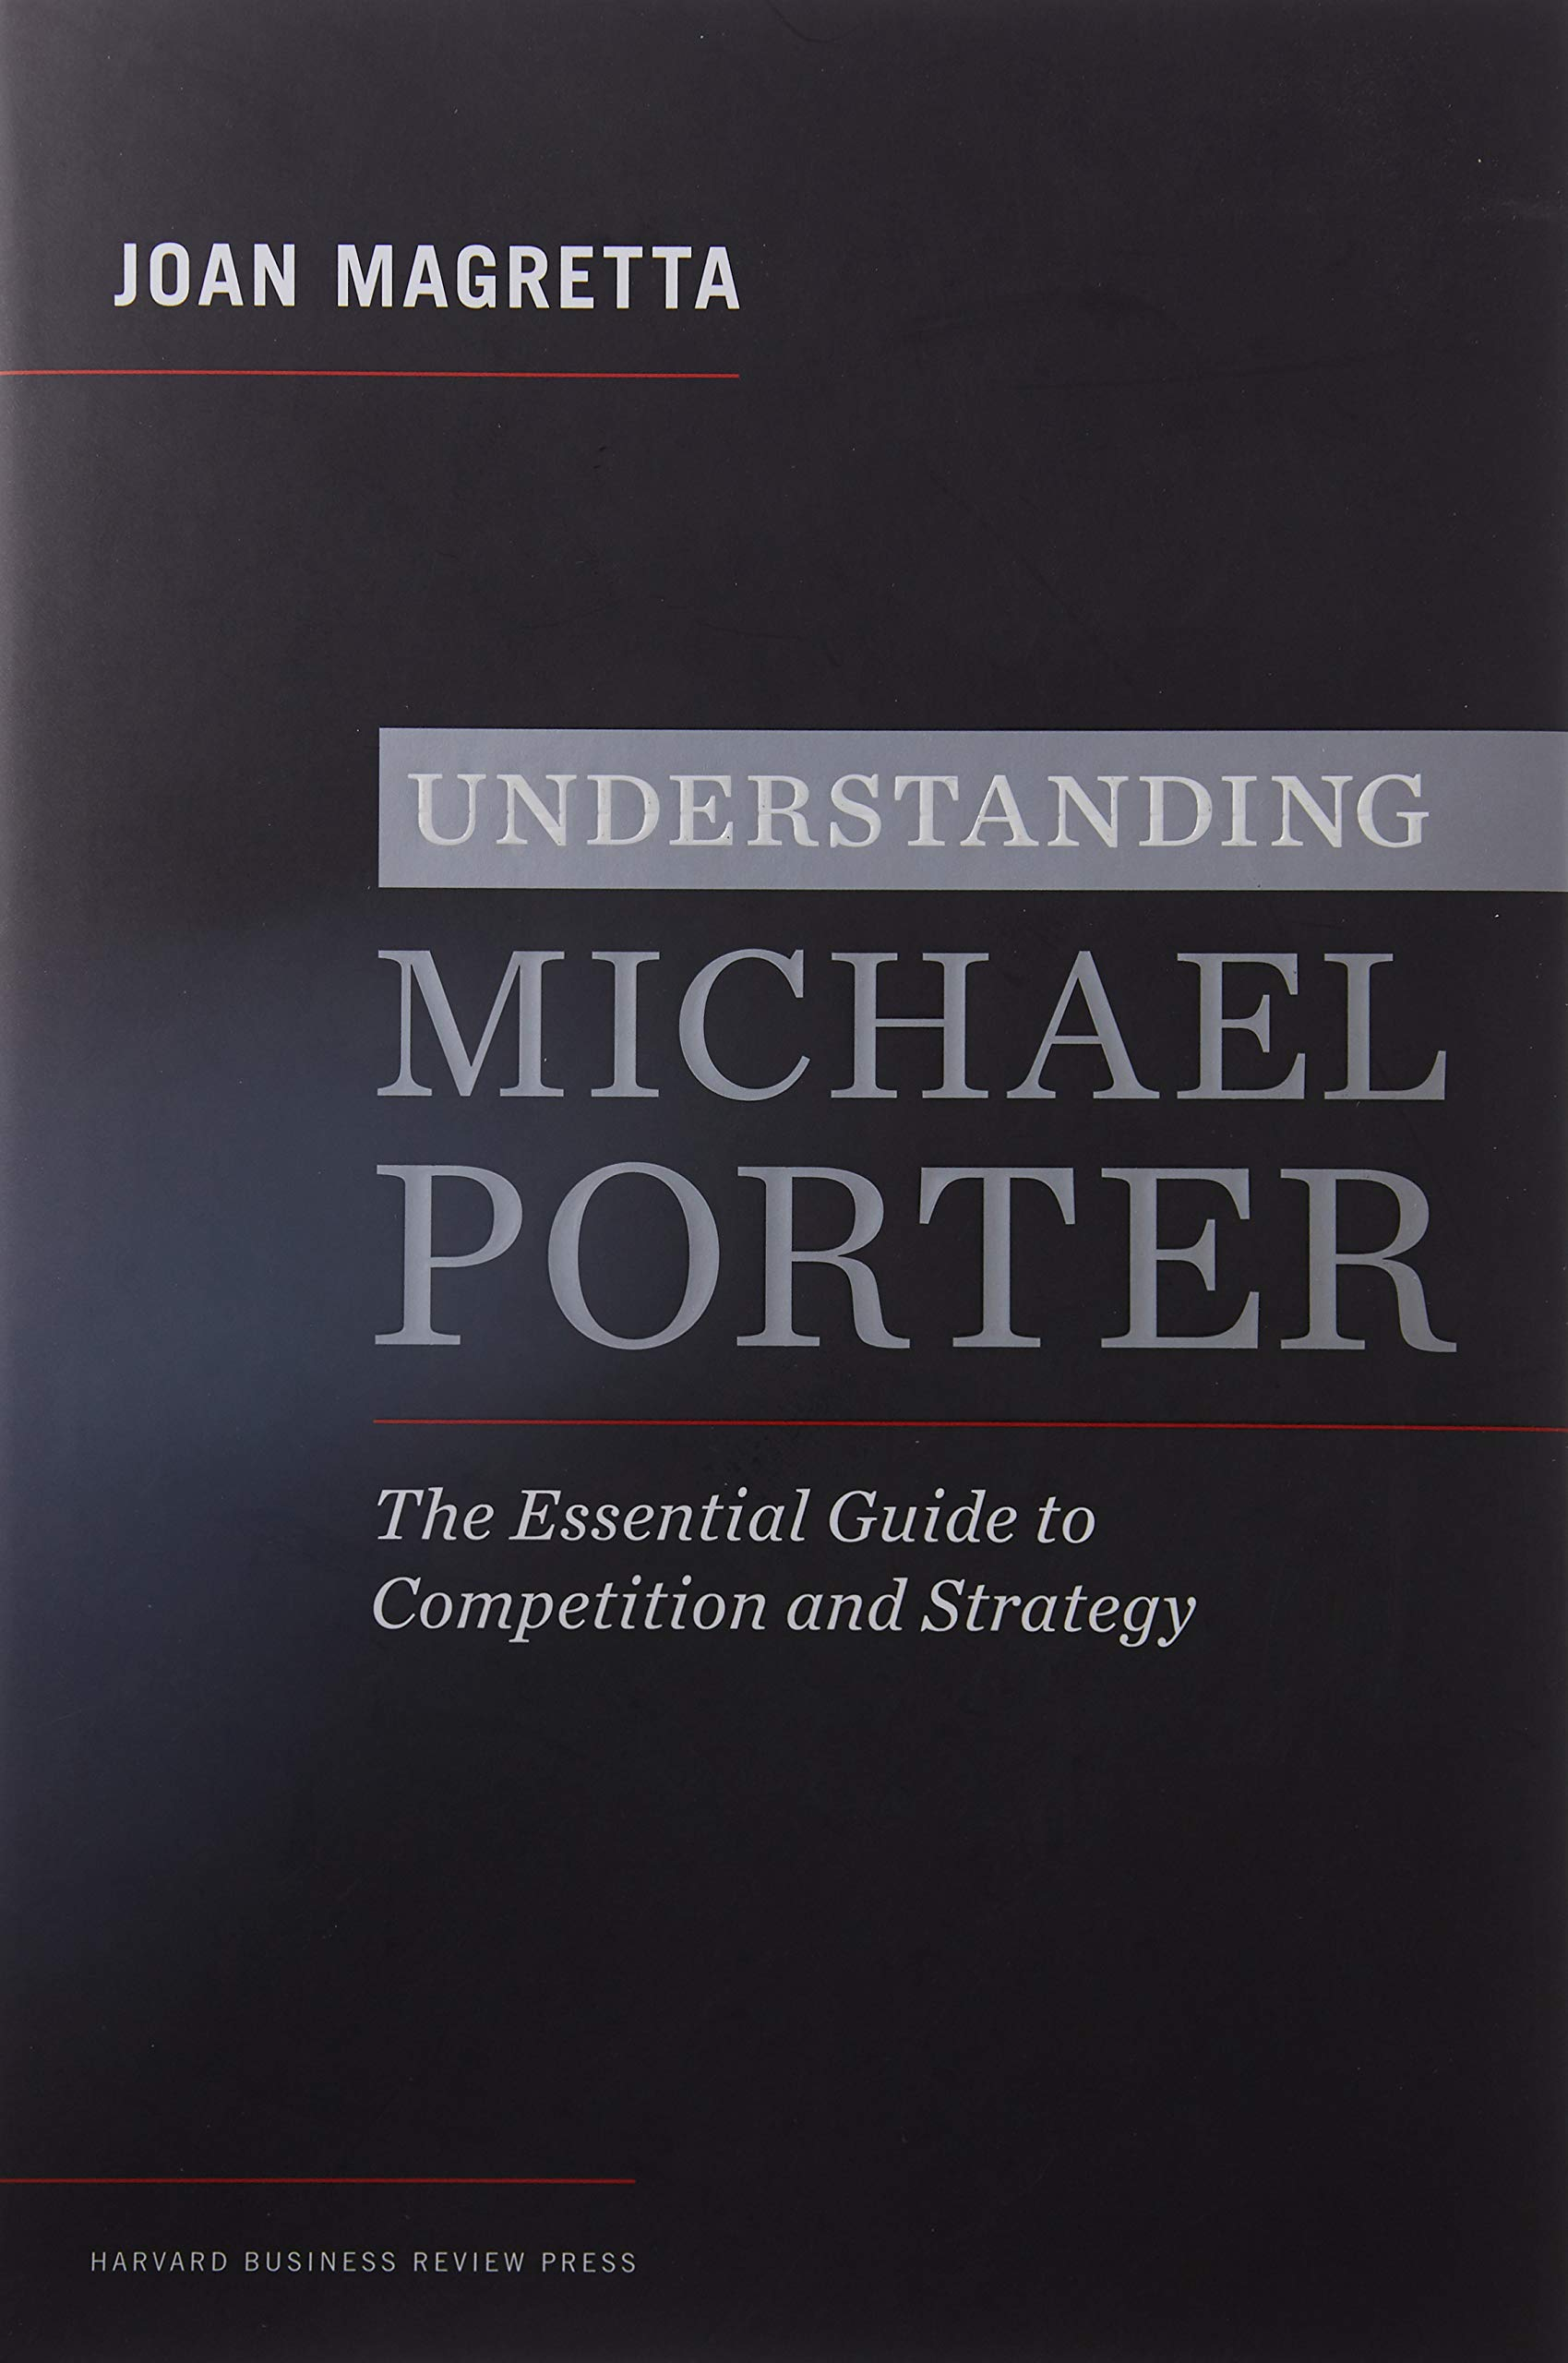 Picture of the Understanding, Michael Porter book cover